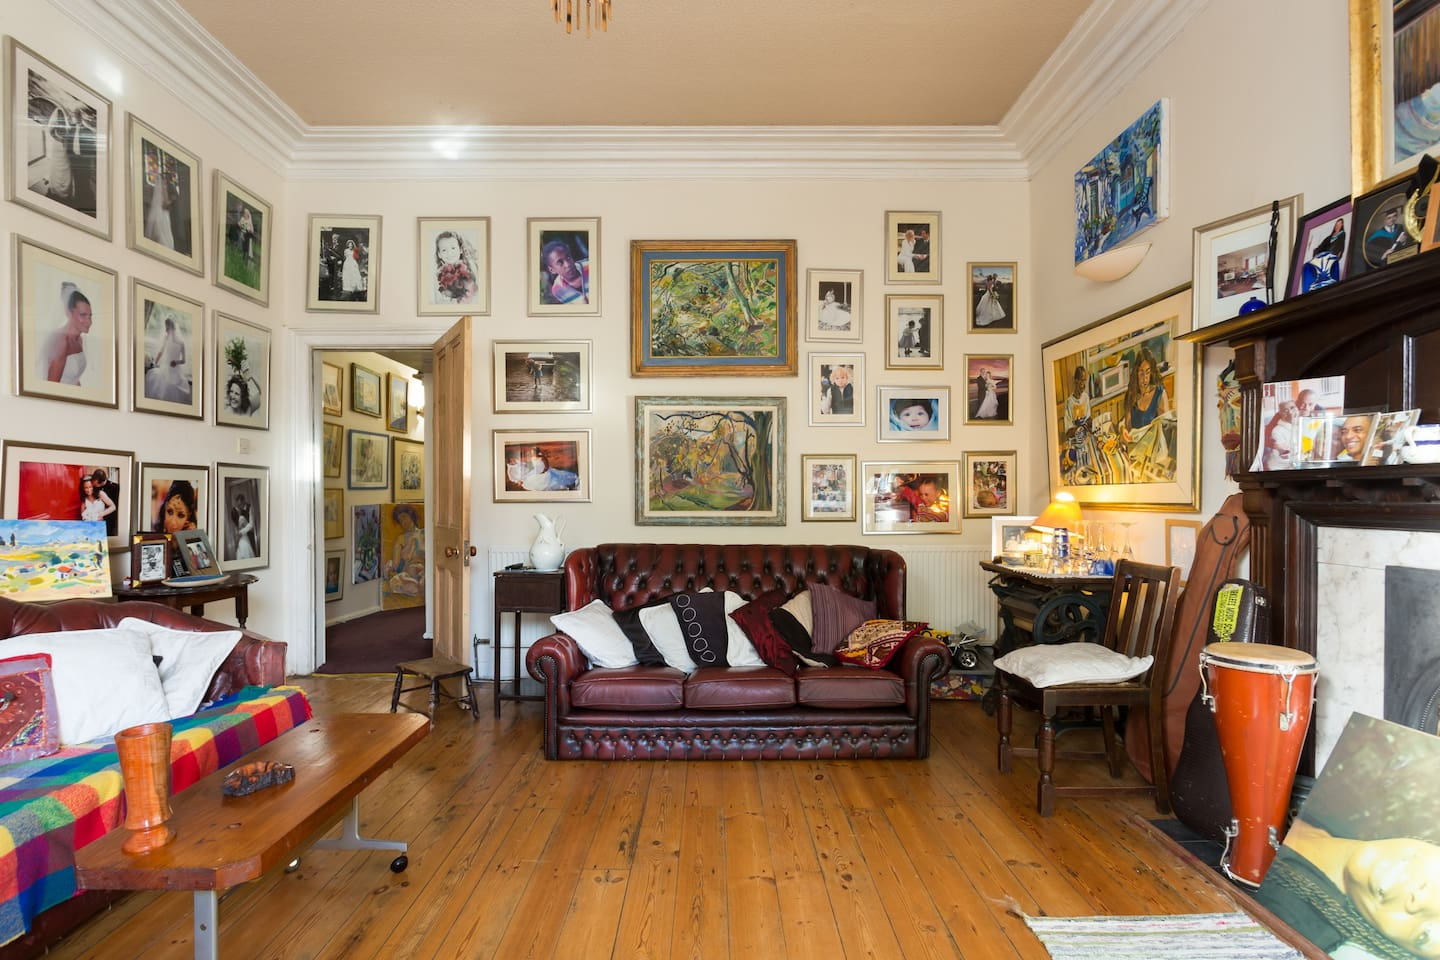 Front room full of paintings and wedding photos.